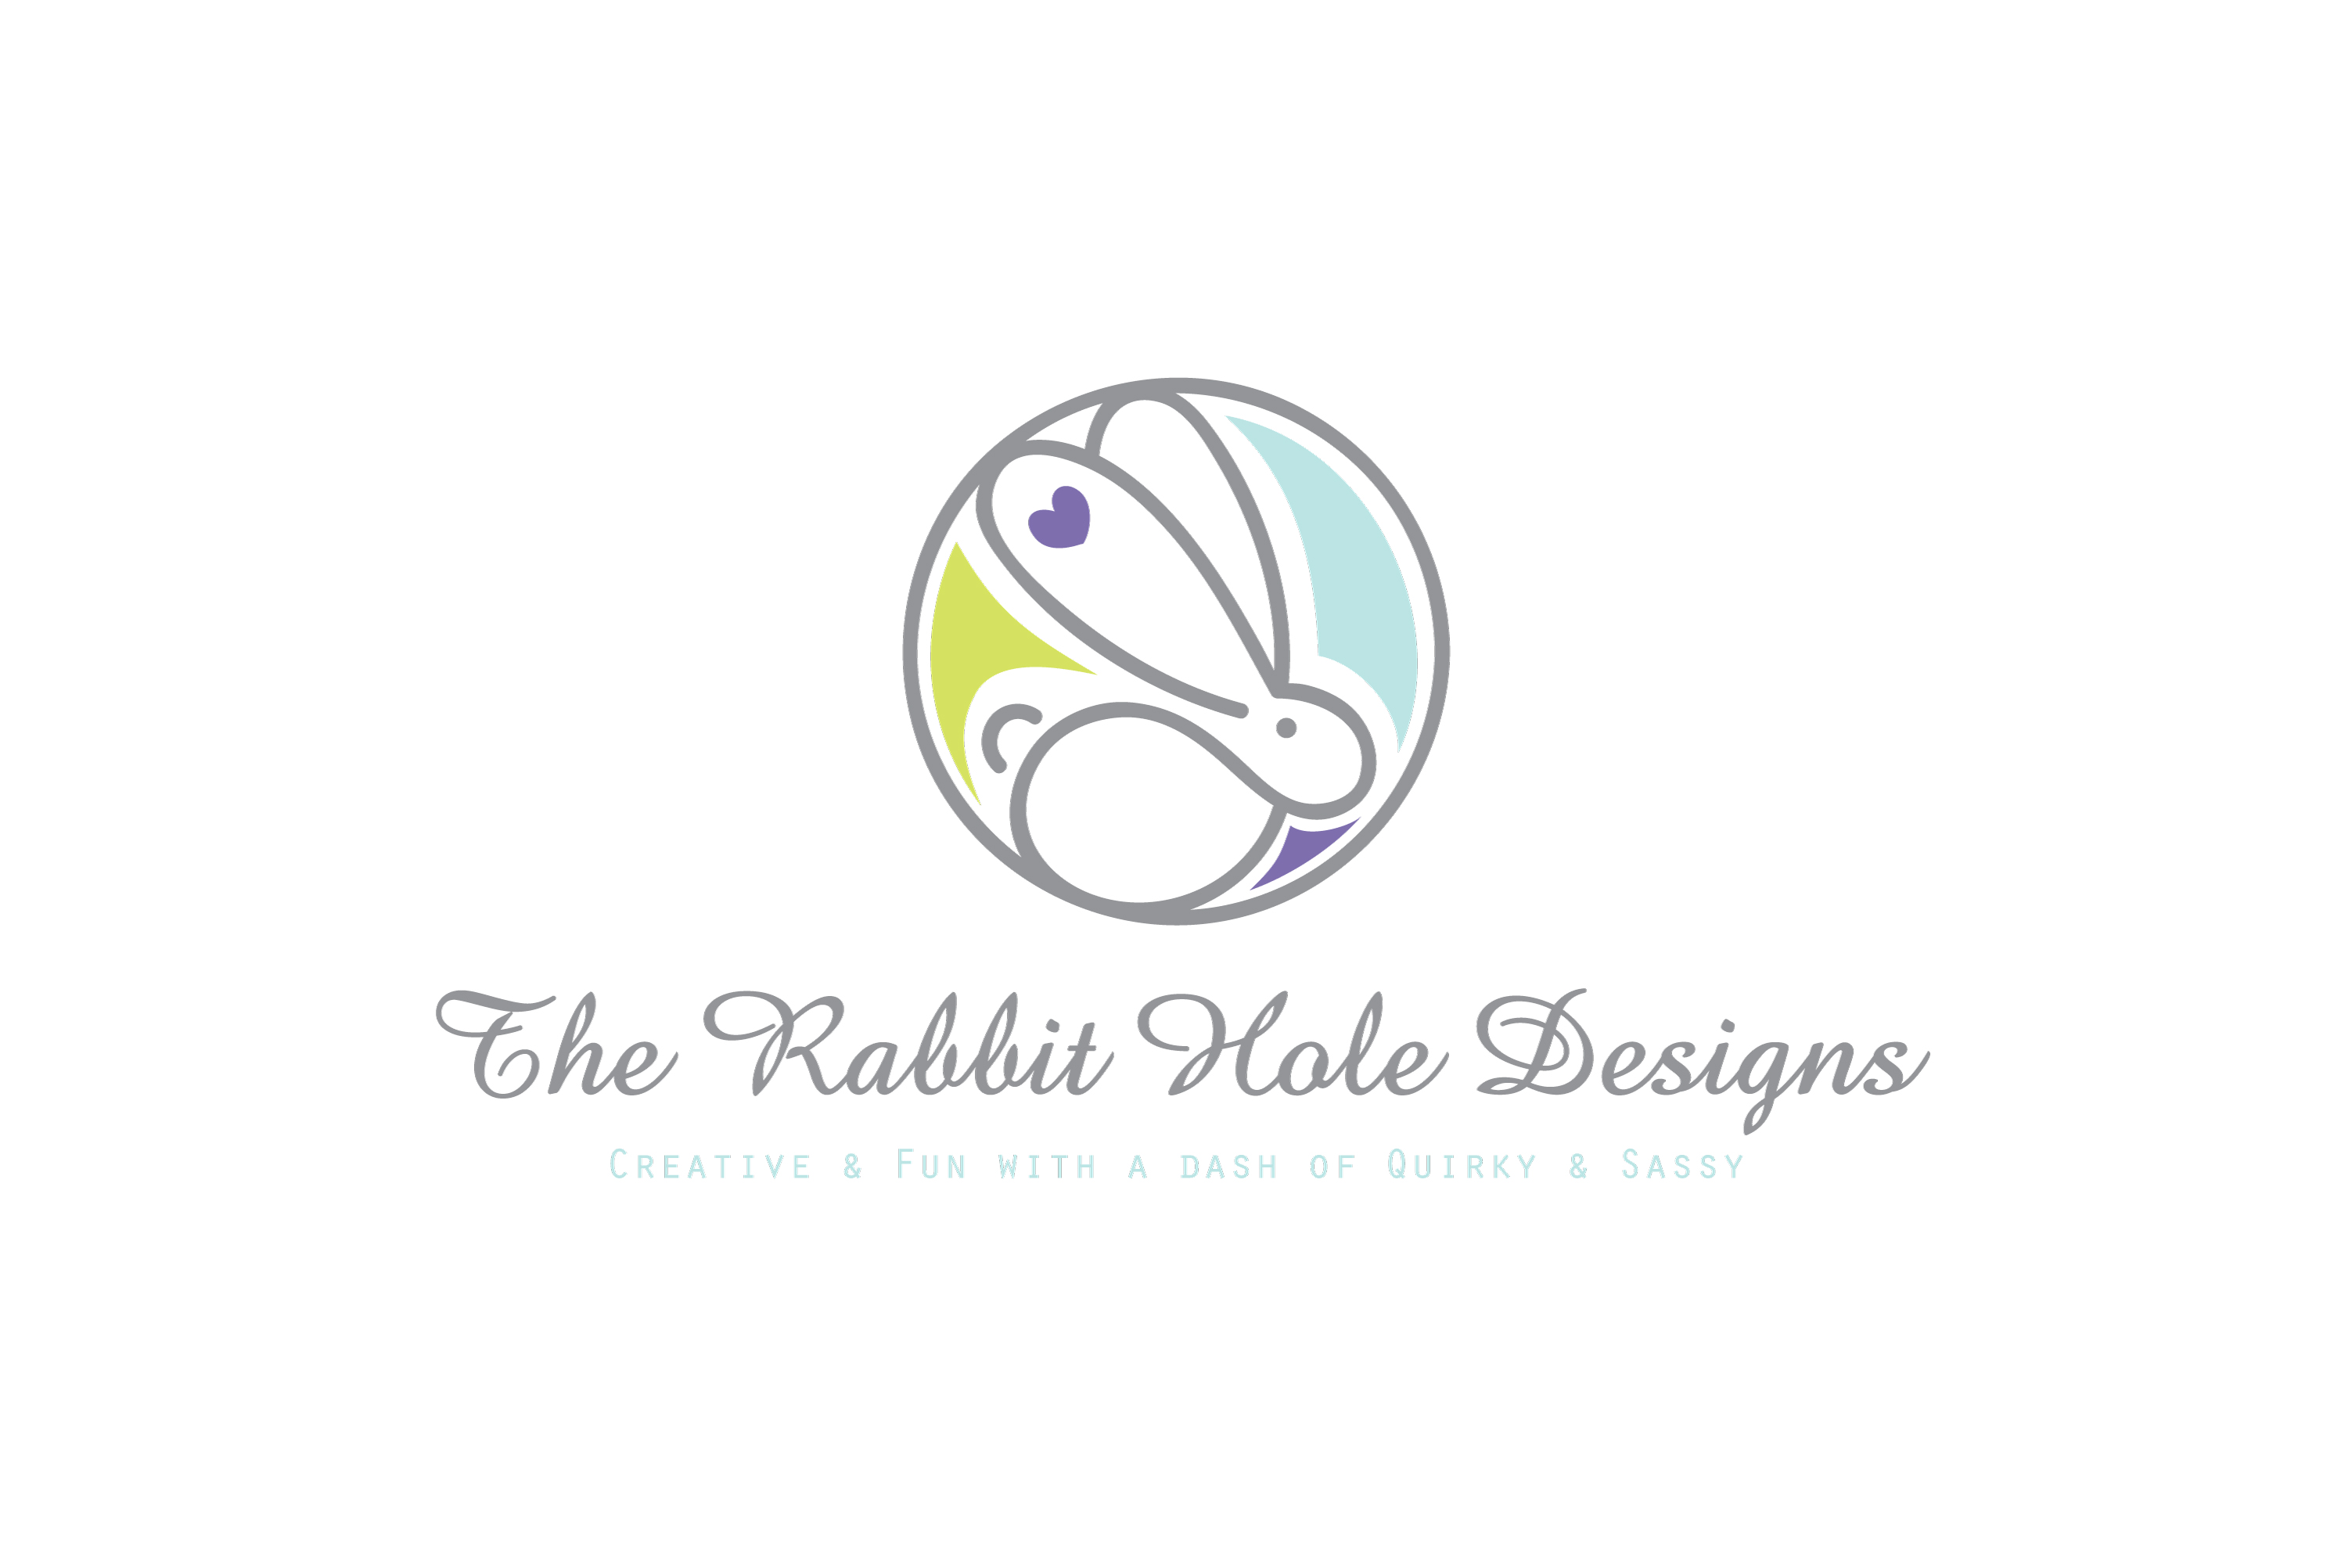 The Rabbit Hole Designs brand image